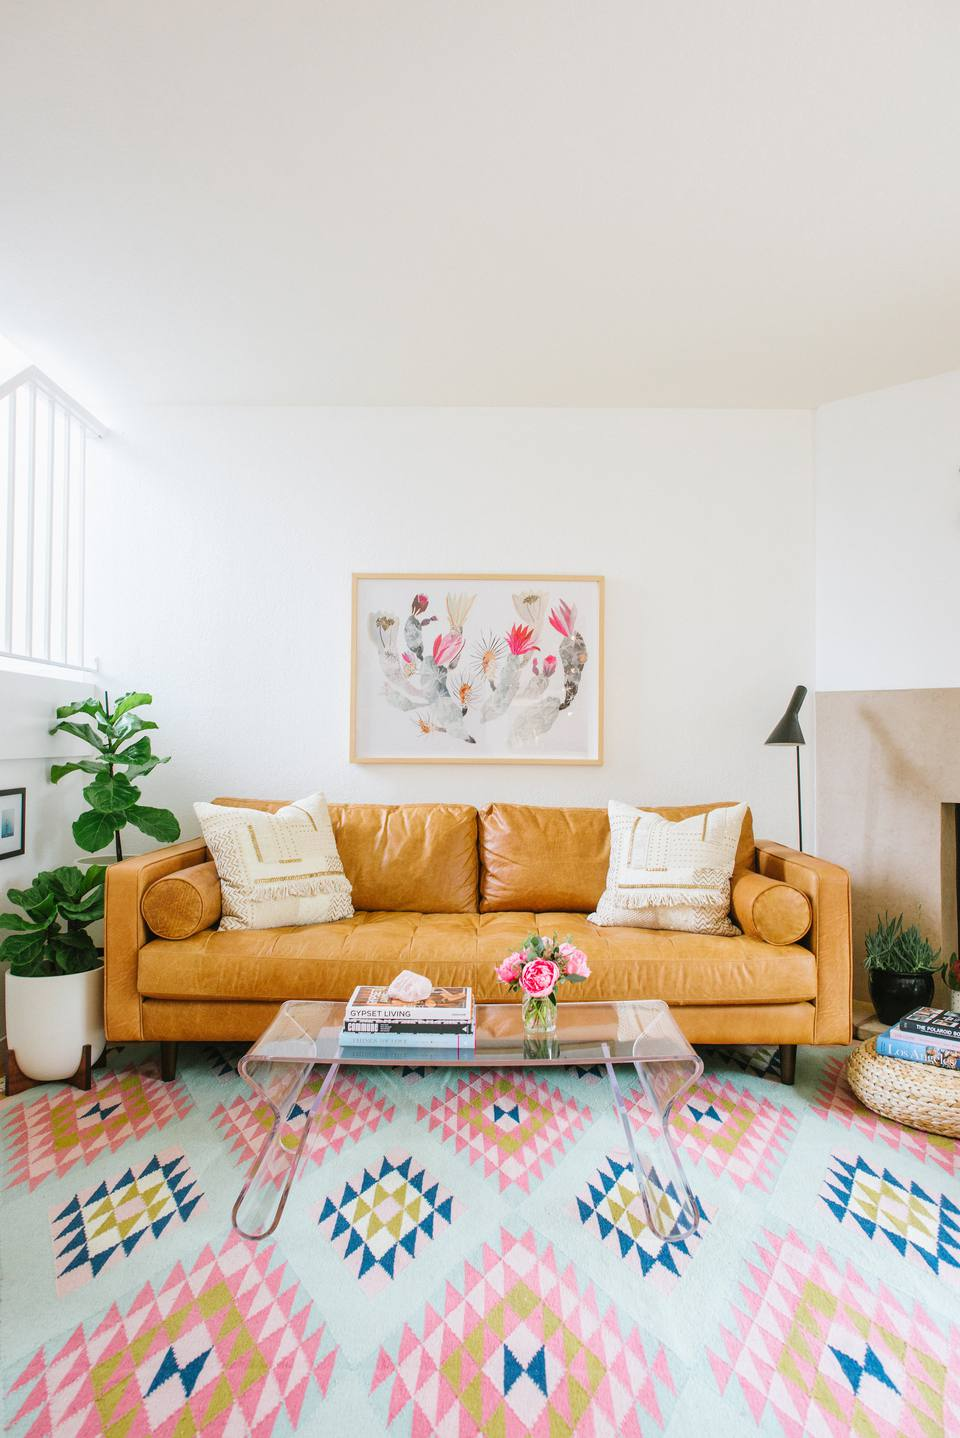 5 Ways MidCentury Modern Furniture Can Liven Up Your Modern Decor